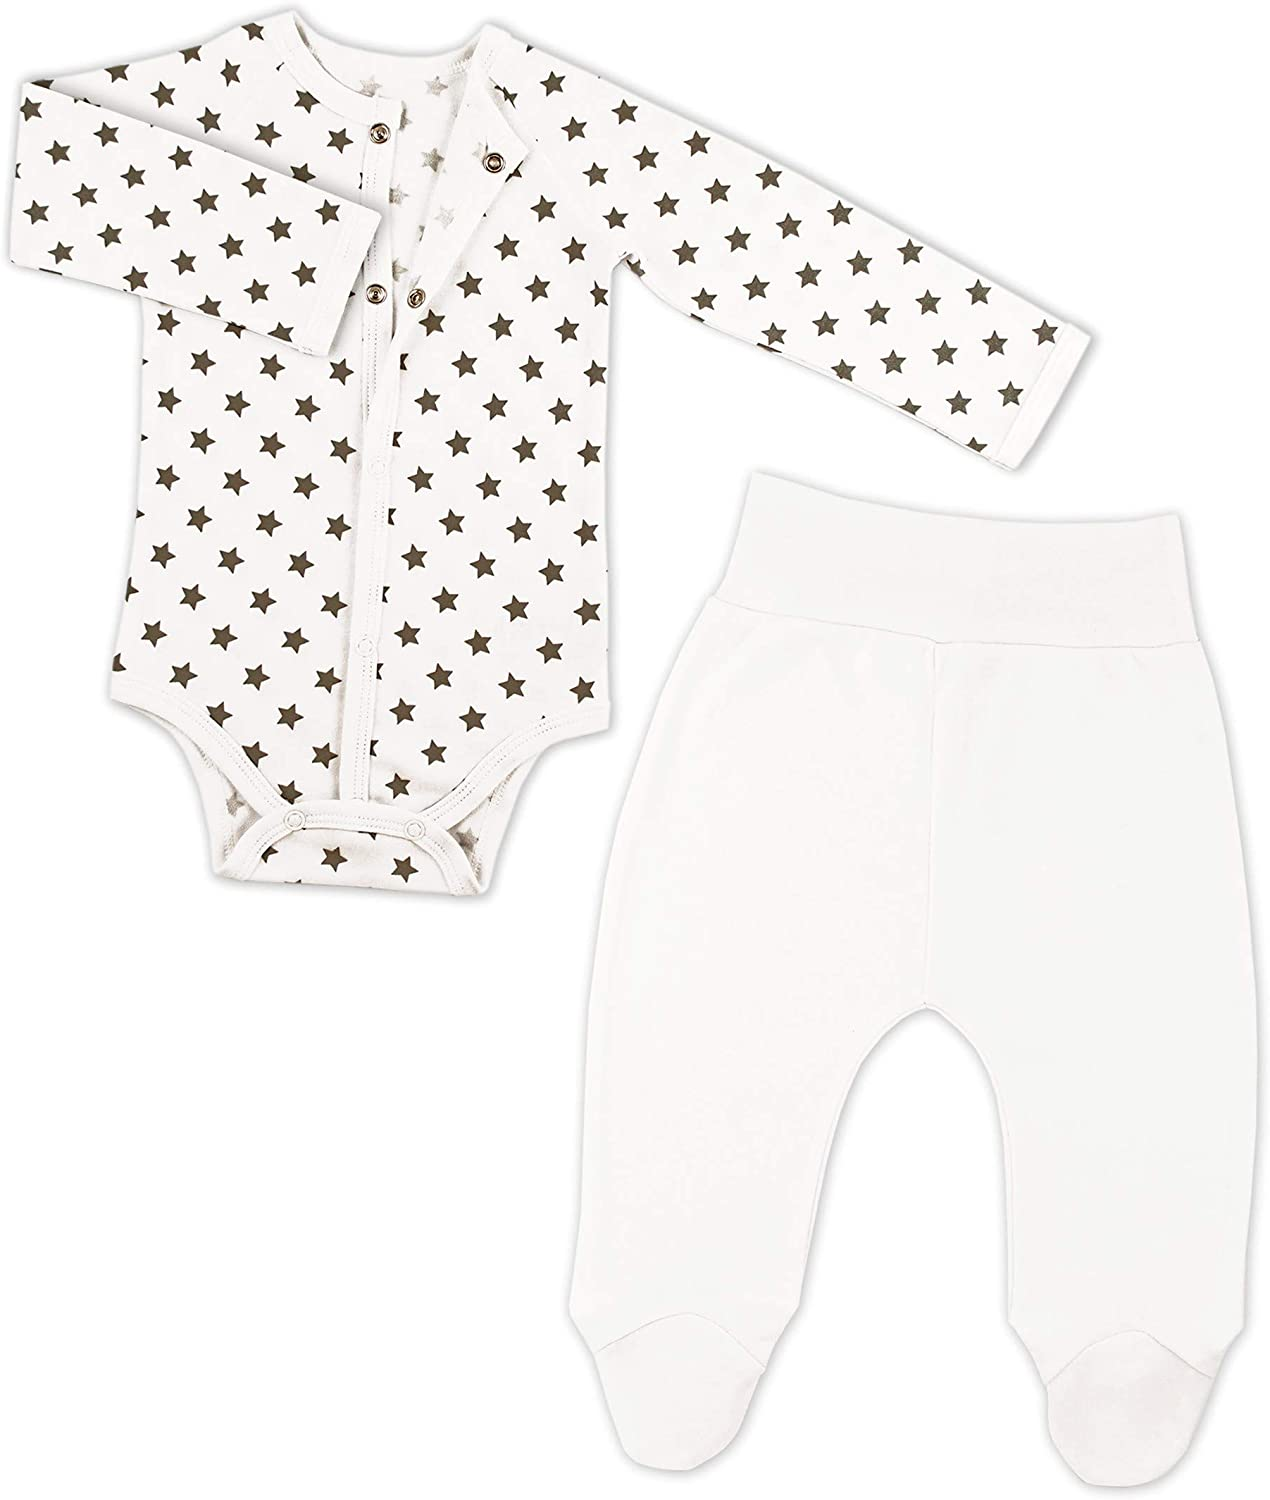 Bernisa Baby Girls' 2-Pack Cotton Outfit Newborn to 6 Months Pant Front Snap Long-Sleeve Bodysuit